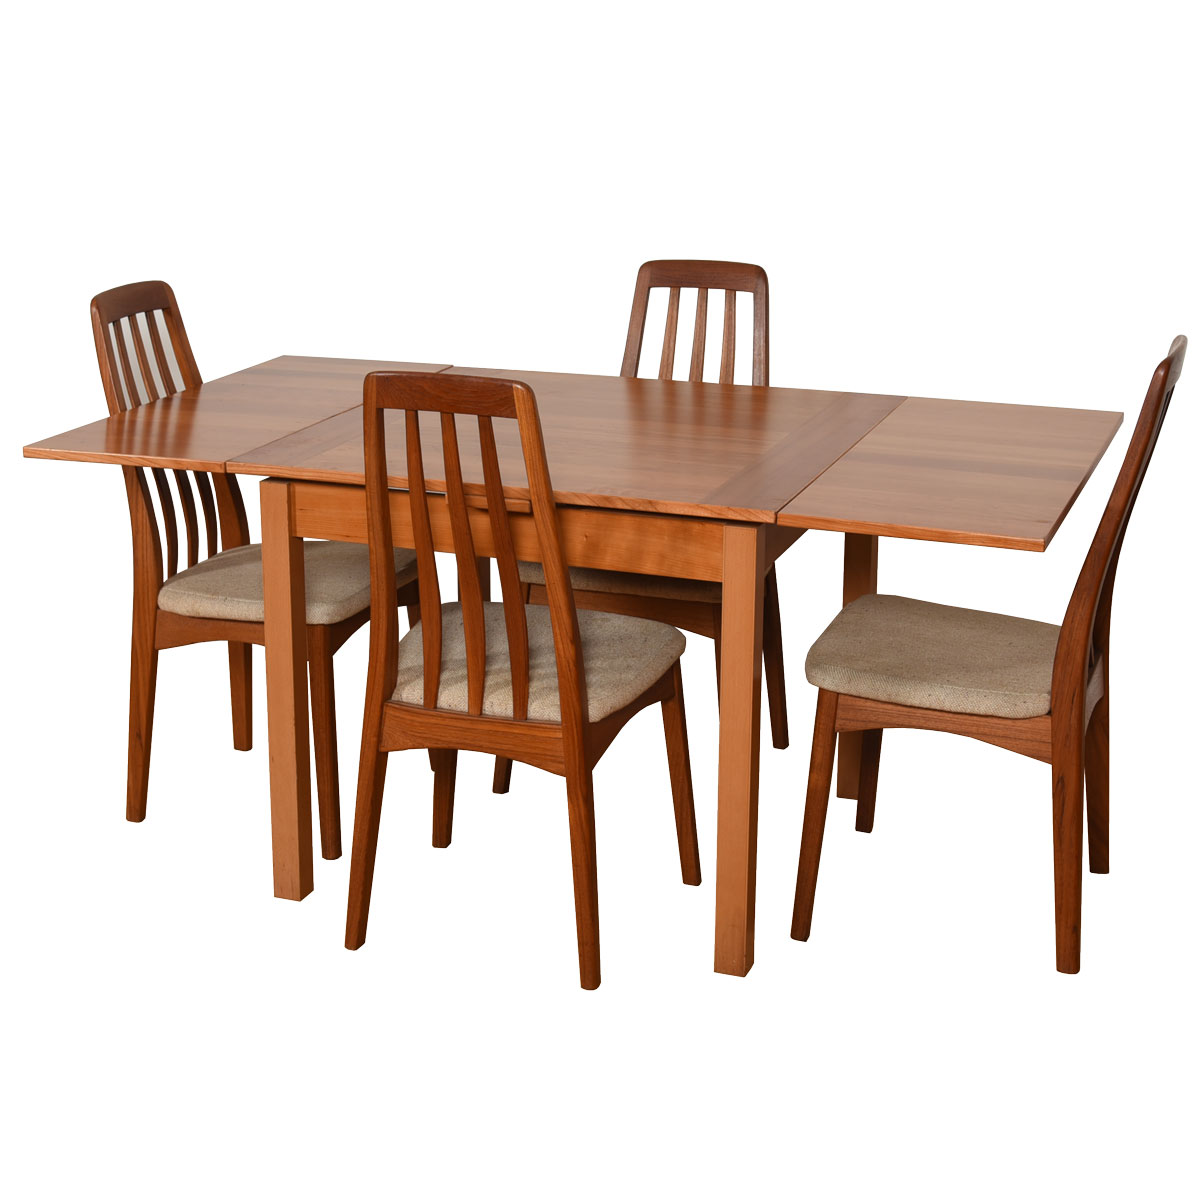 Square-to-Rectangle Danish Compact Expanding Dining Table